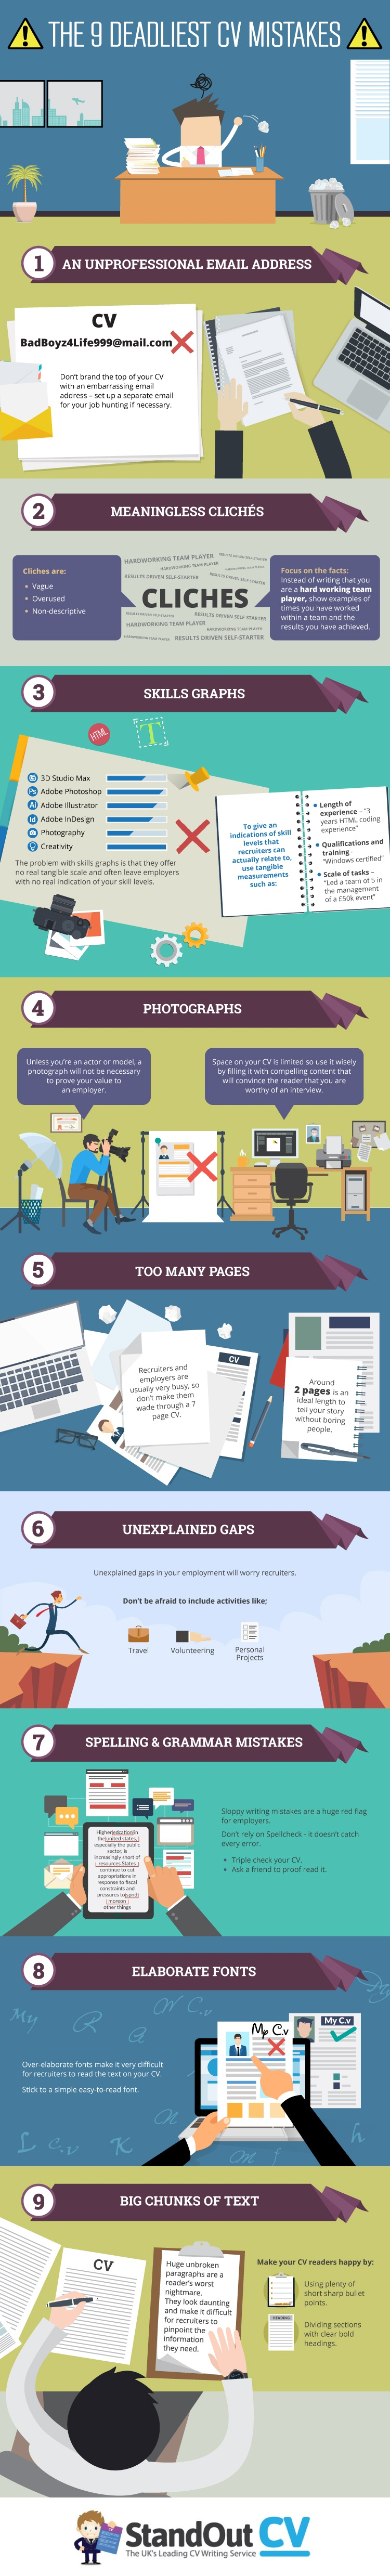 Superb Infographic On Resume Advice For Avoiding Common CV Mistakes